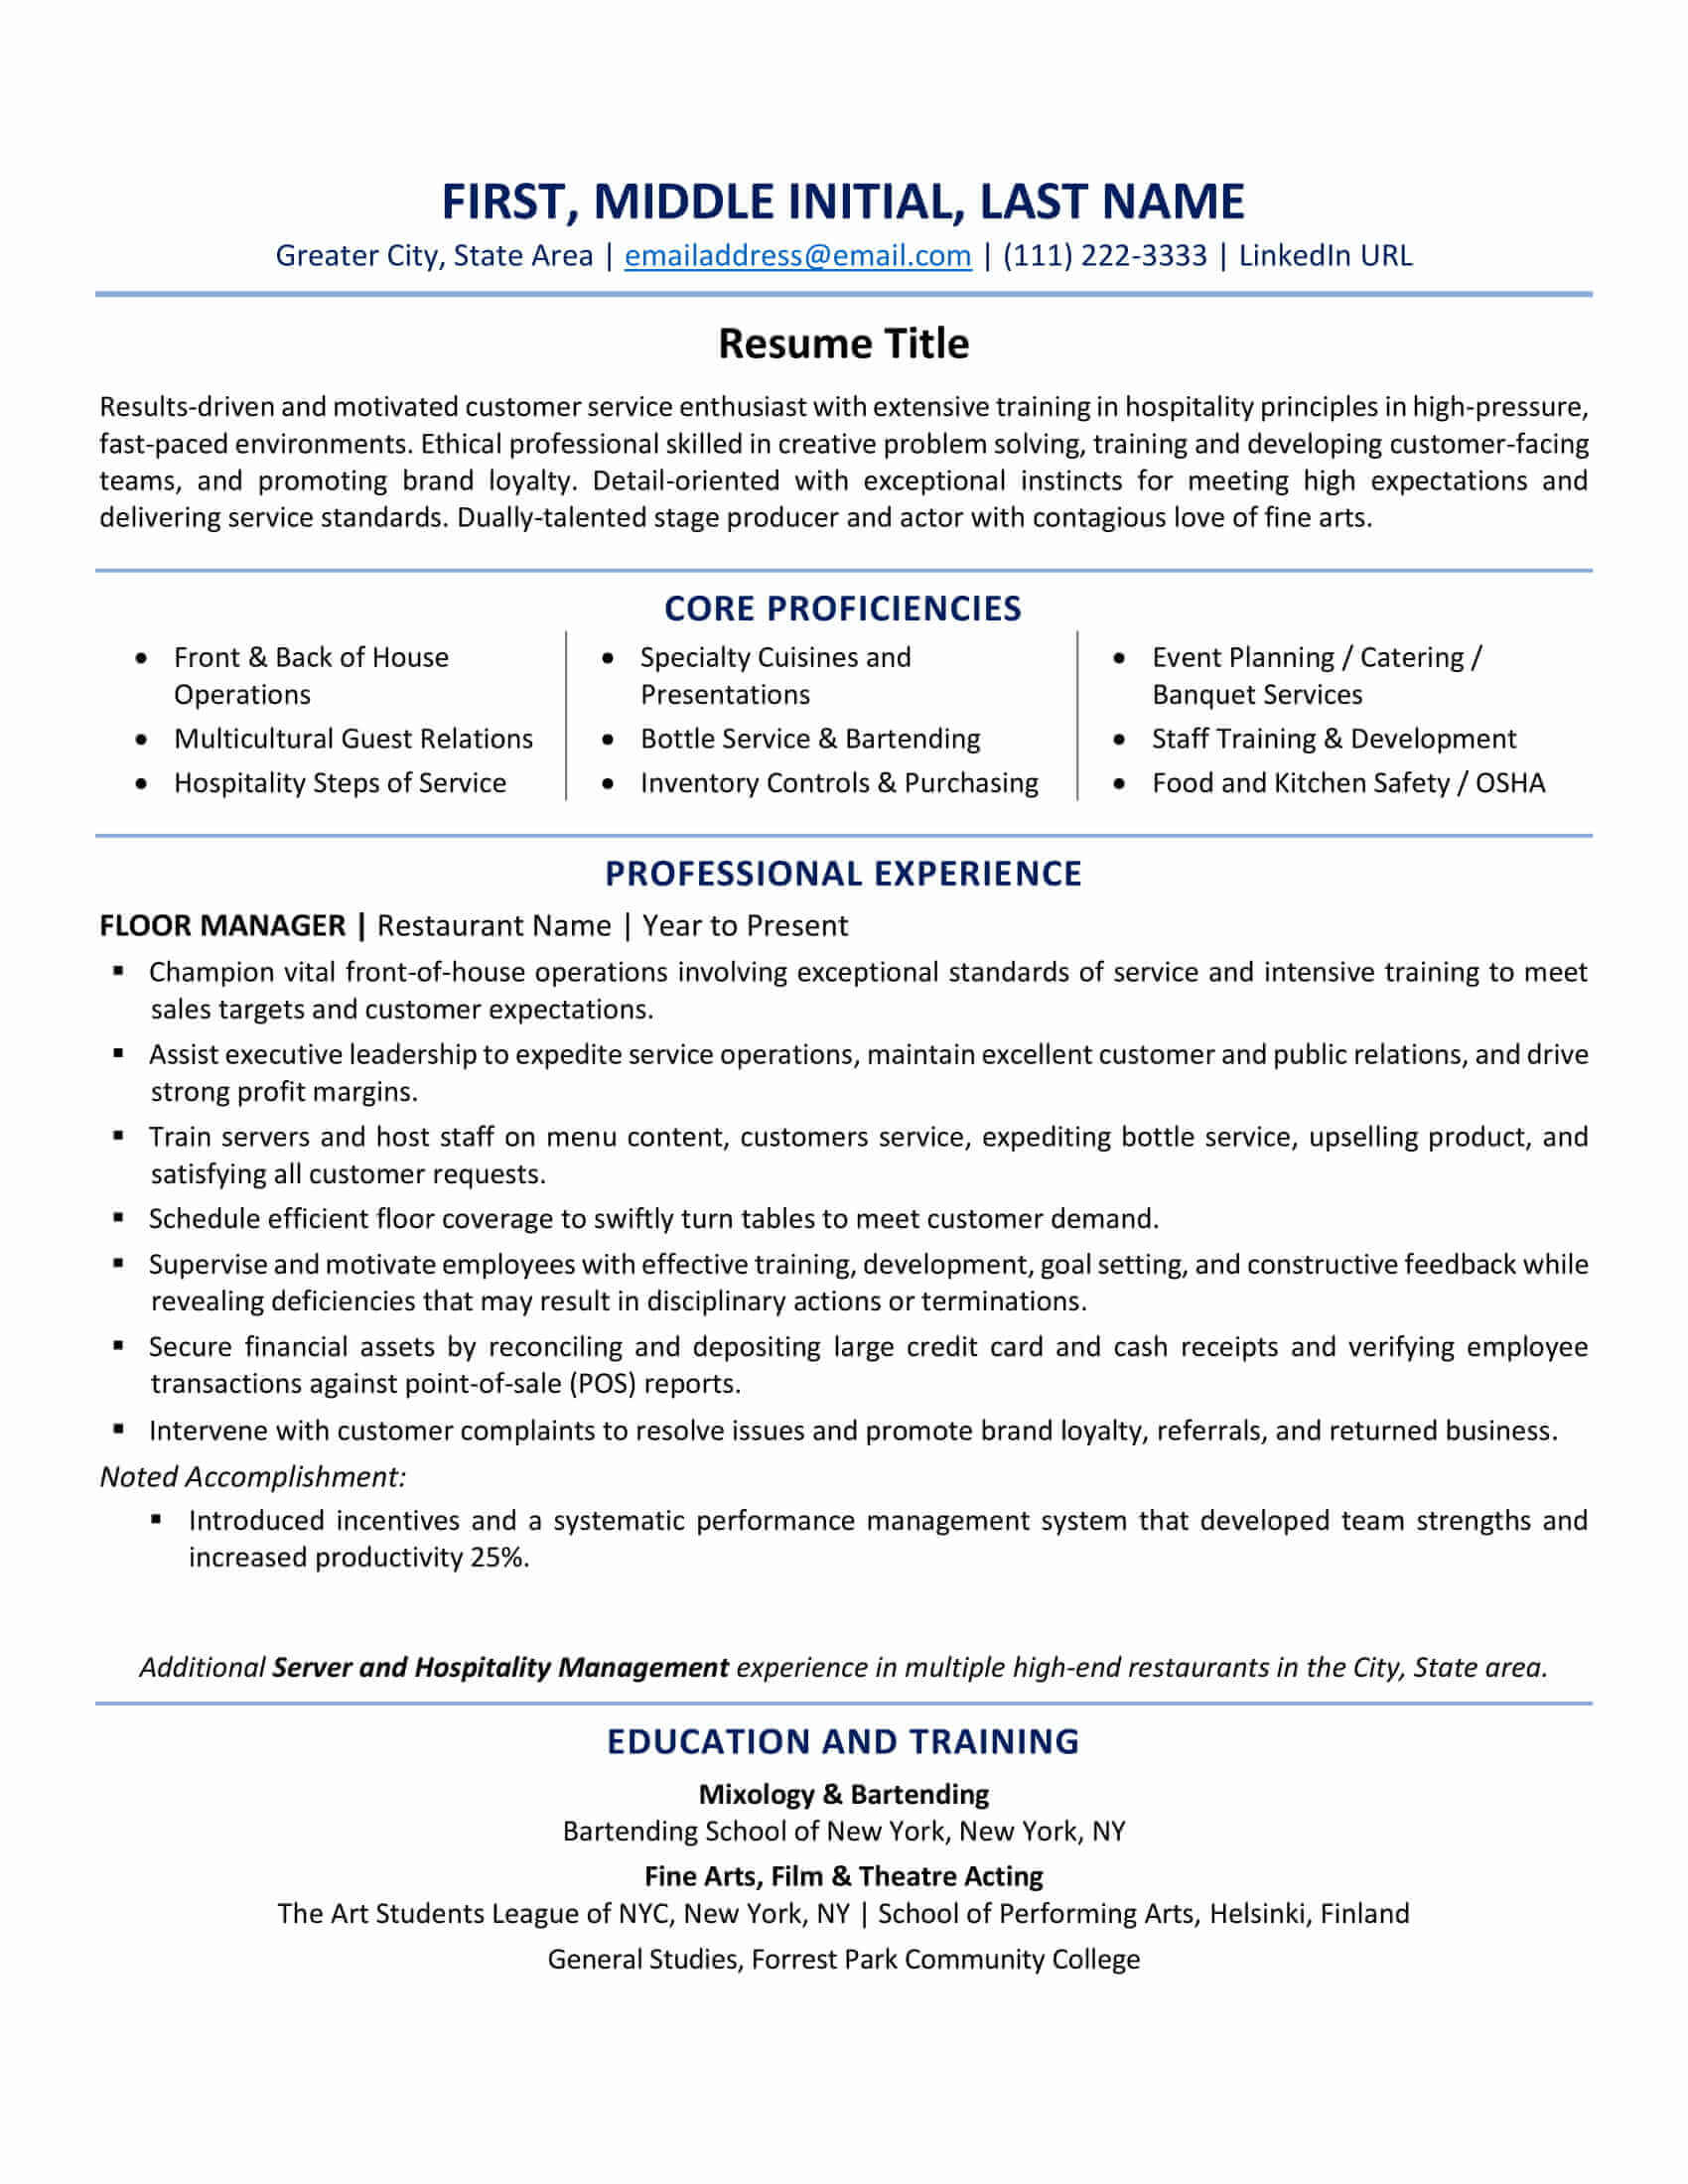 ats resume test free checker formatting examples and job description match when moving to Resume Free Resume And Job Description Match